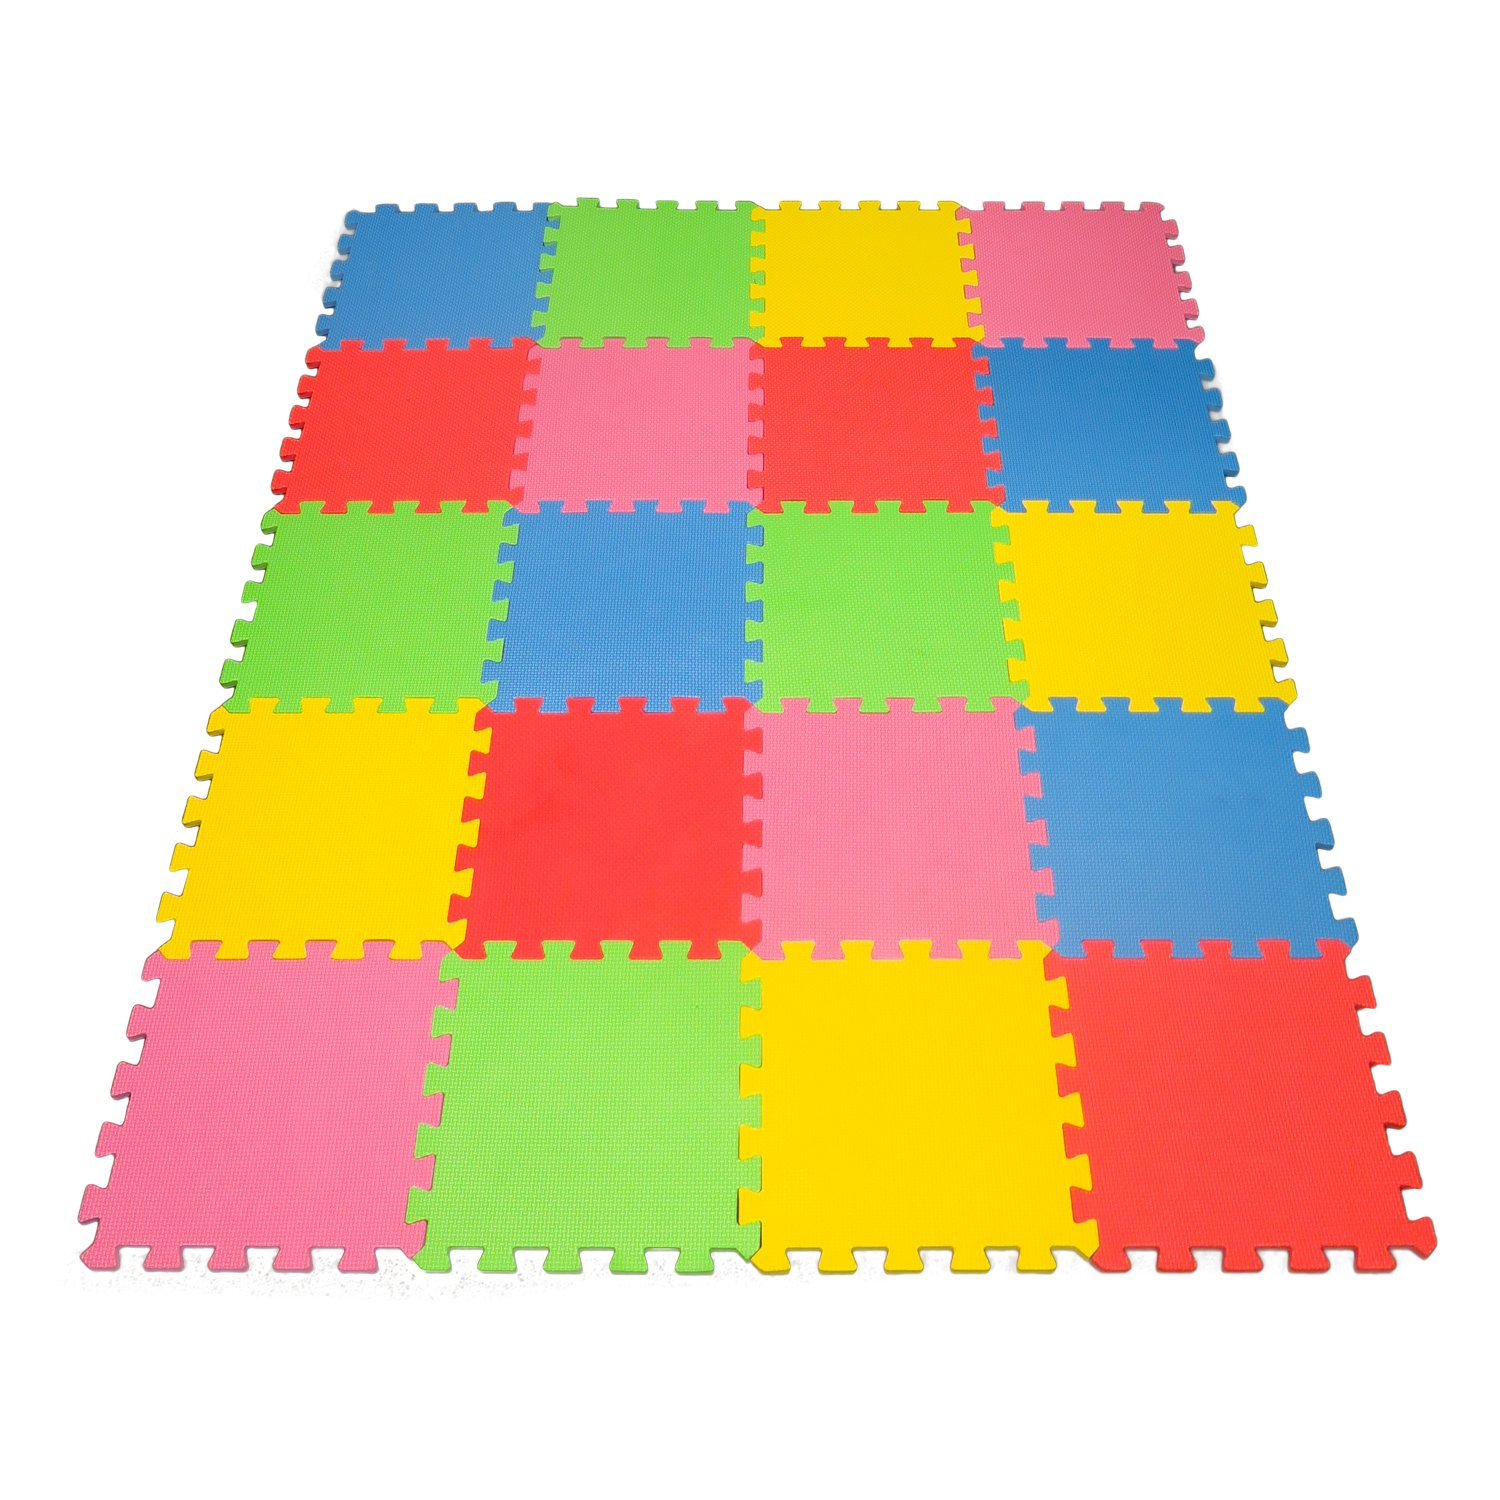 Angels 20 XLarge Foam Mats Toy ideal Gift, Colorful Tiles Multi Use, Create & Build A Safe PLay Area Interlocking Puzzle eva Non-Toxic Floor for Children Toddler Infant Kids Baby Room & Yard Superyard by Angels